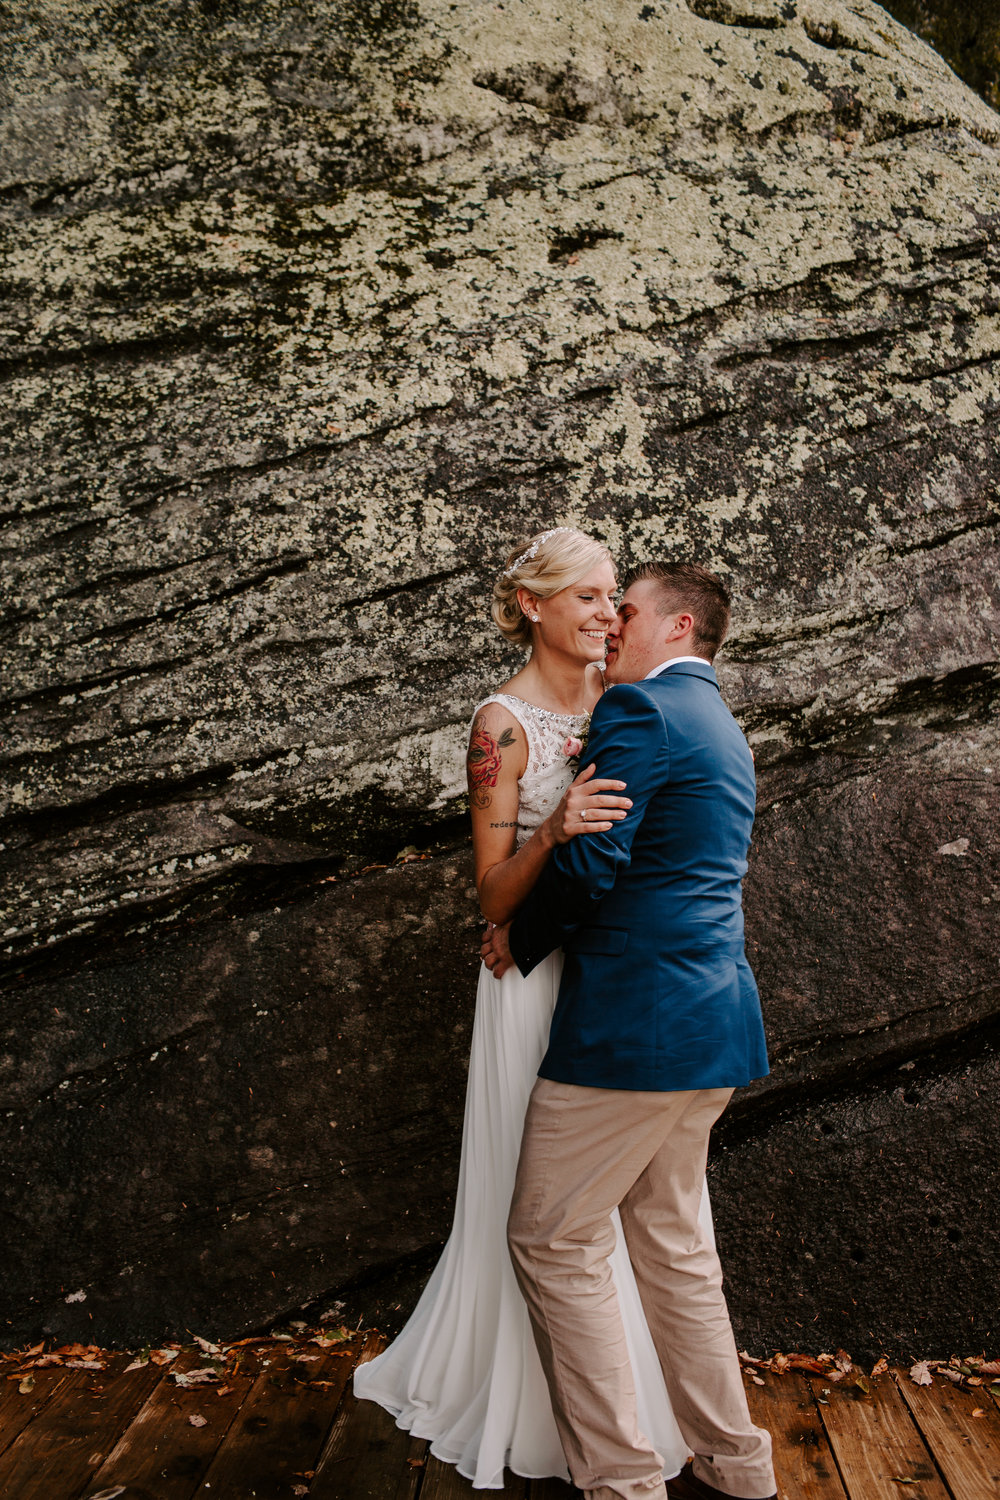 Miranda&braedon_ashevilleelopement (35 of 101).jpg